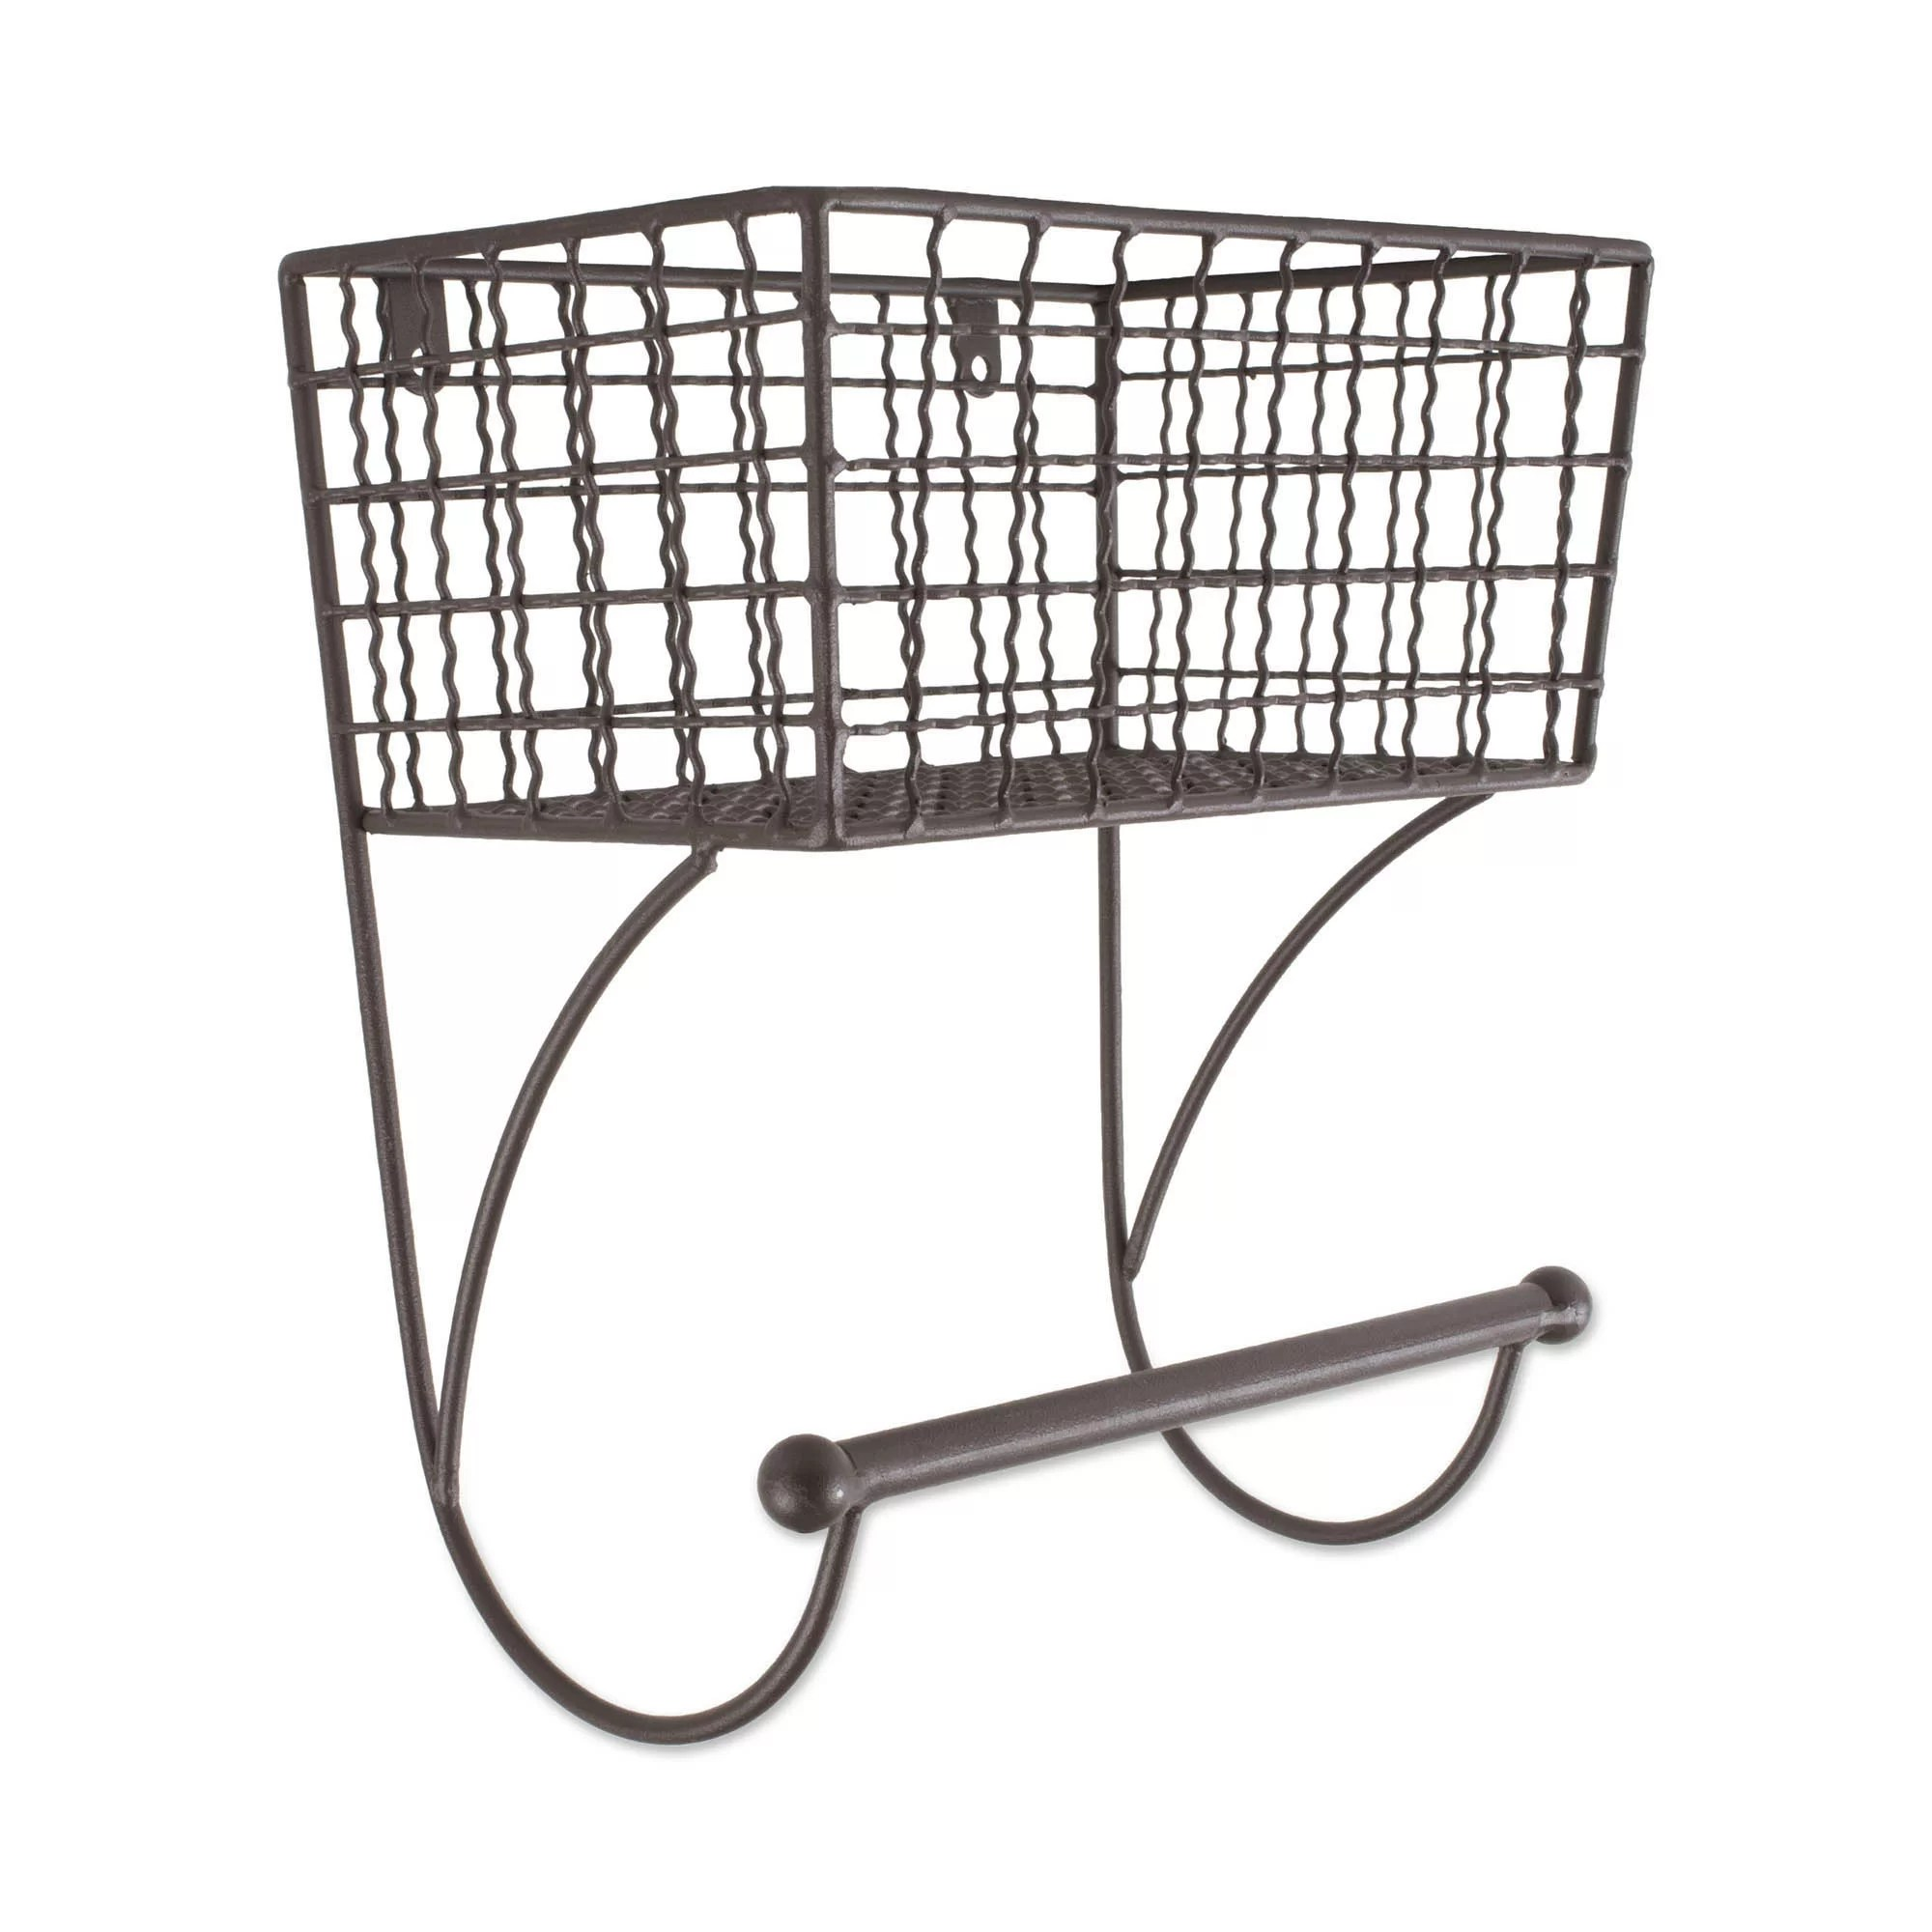 Design Imports Wire Bar Farmhouse Wall Mounted Towel Rack